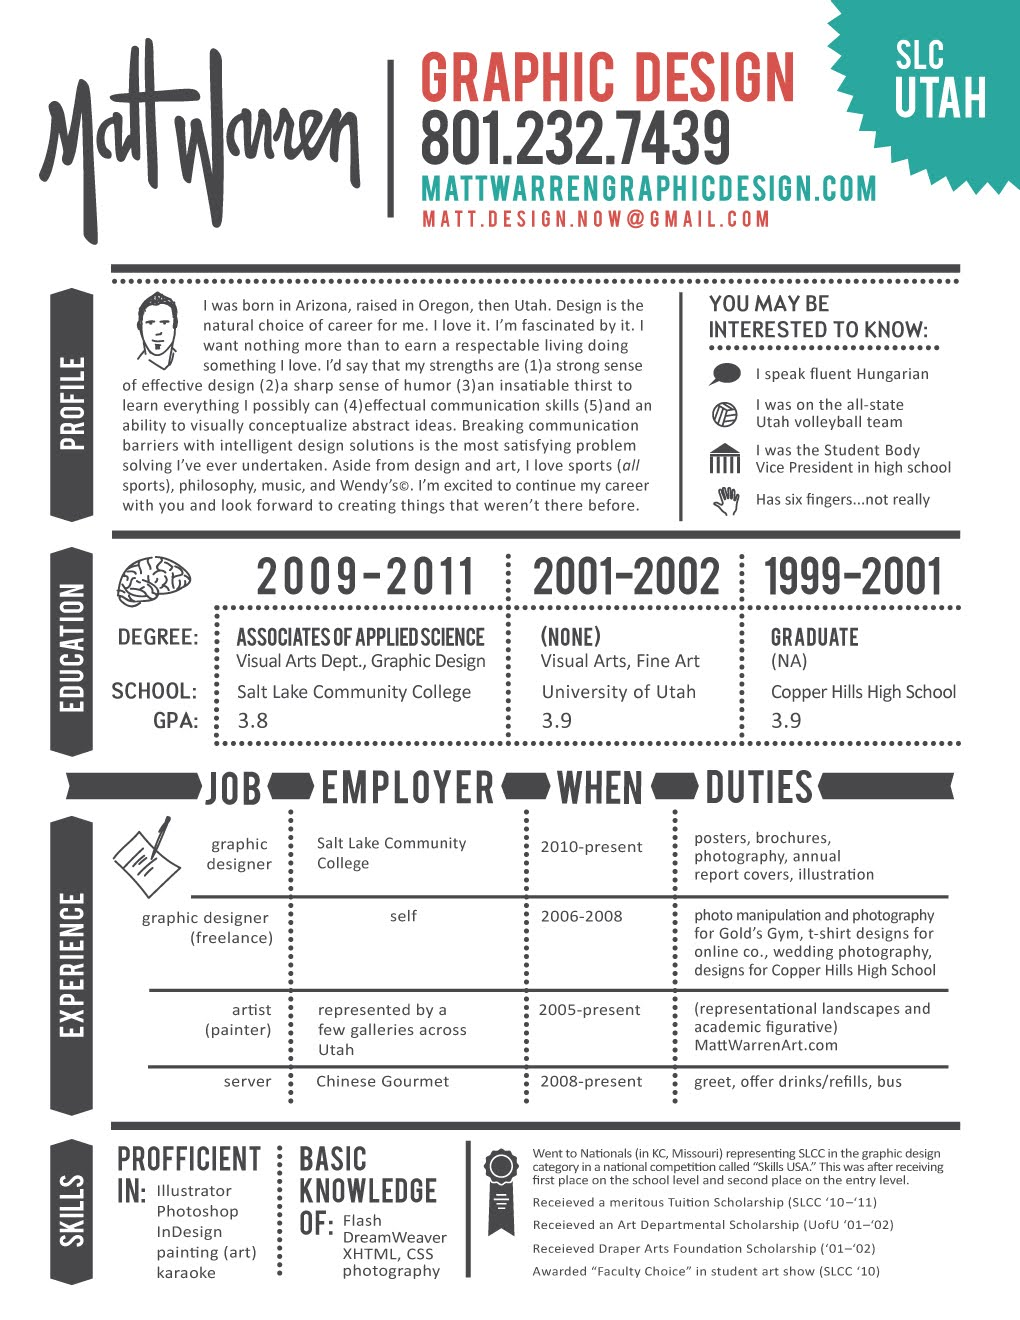 Opposenewapstandardsus  Winsome  Images About Hire Me On Pinterest  Graphic Designer Resume  With Lovable  Images About Hire Me On Pinterest  Graphic Designer Resume Resume Design And Resume With Beautiful How To Send Resume Through Email Also Example Of Great Resume In Addition Resume Team Player And Resume For Physical Therapist As Well As The Best Resume Template Additionally Resume Download Chrome From Pinterestcom With Opposenewapstandardsus  Lovable  Images About Hire Me On Pinterest  Graphic Designer Resume  With Beautiful  Images About Hire Me On Pinterest  Graphic Designer Resume Resume Design And Resume And Winsome How To Send Resume Through Email Also Example Of Great Resume In Addition Resume Team Player From Pinterestcom